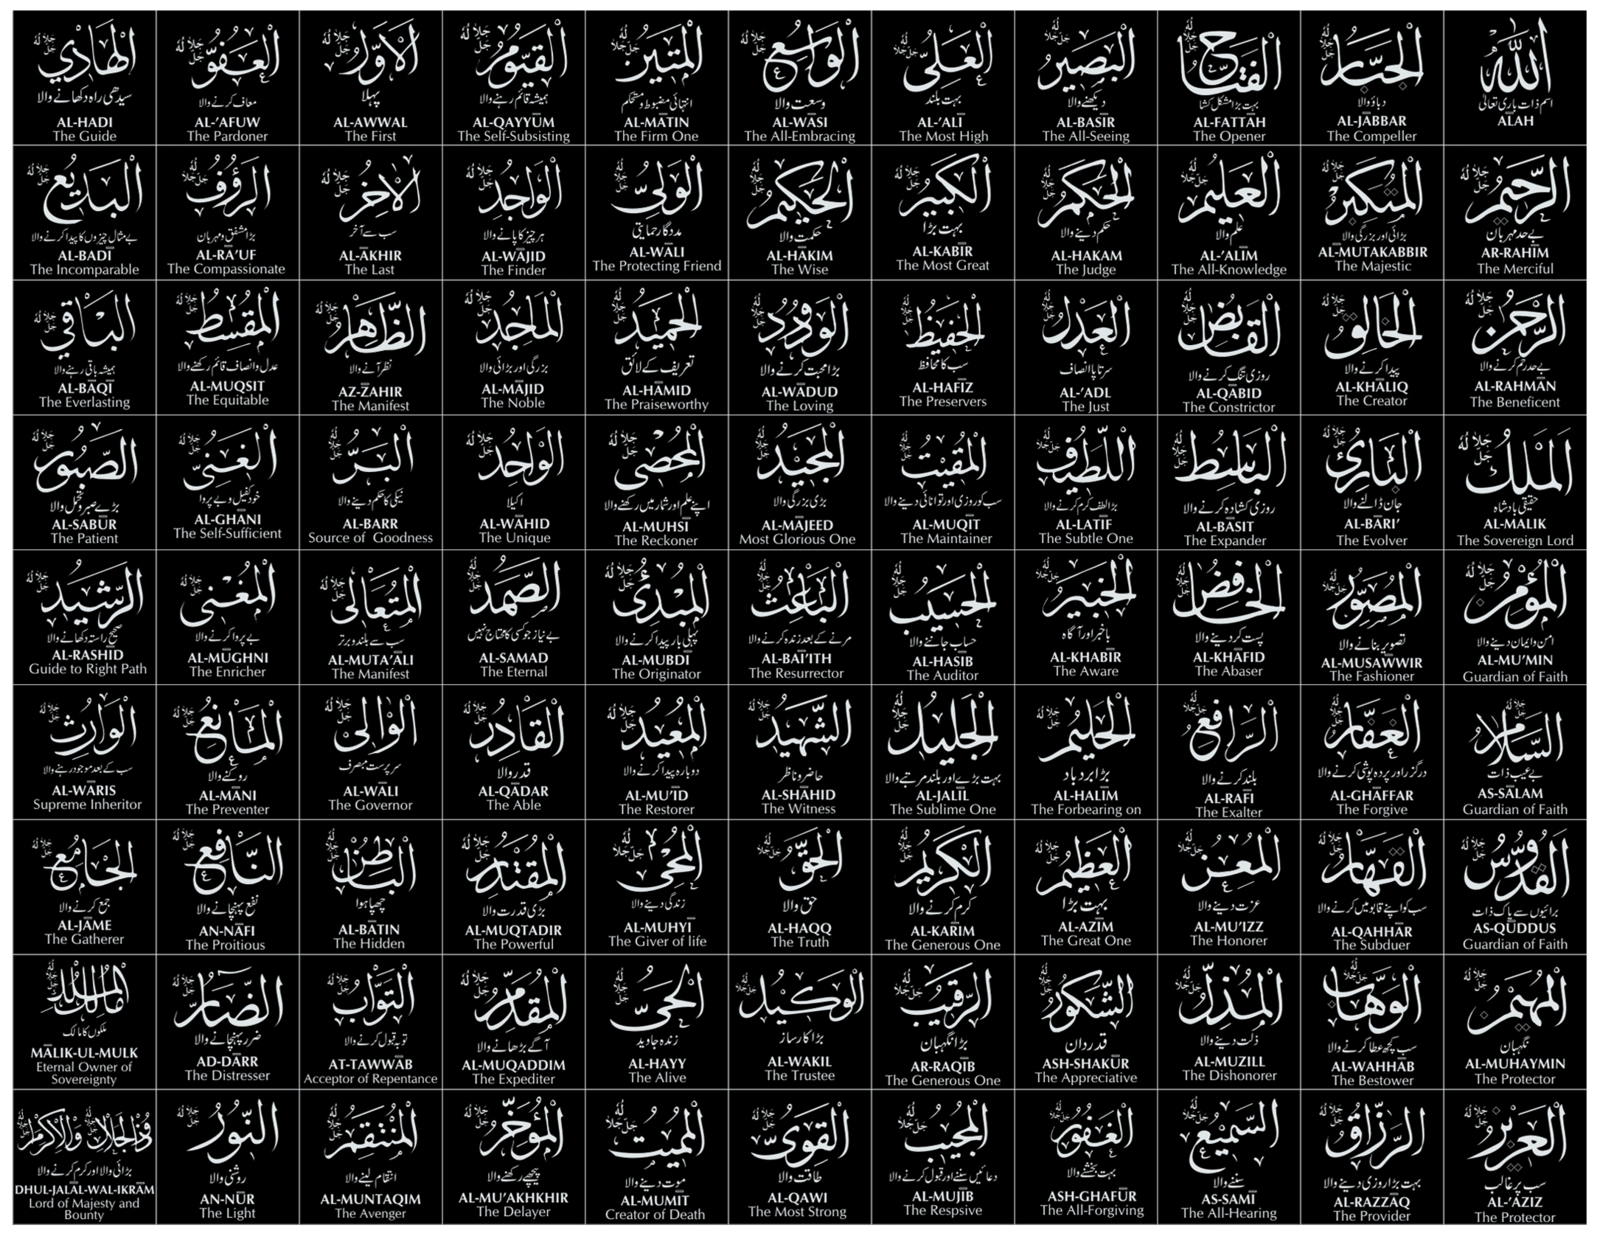 99 names of allah wallpaper hd in english Math glossary